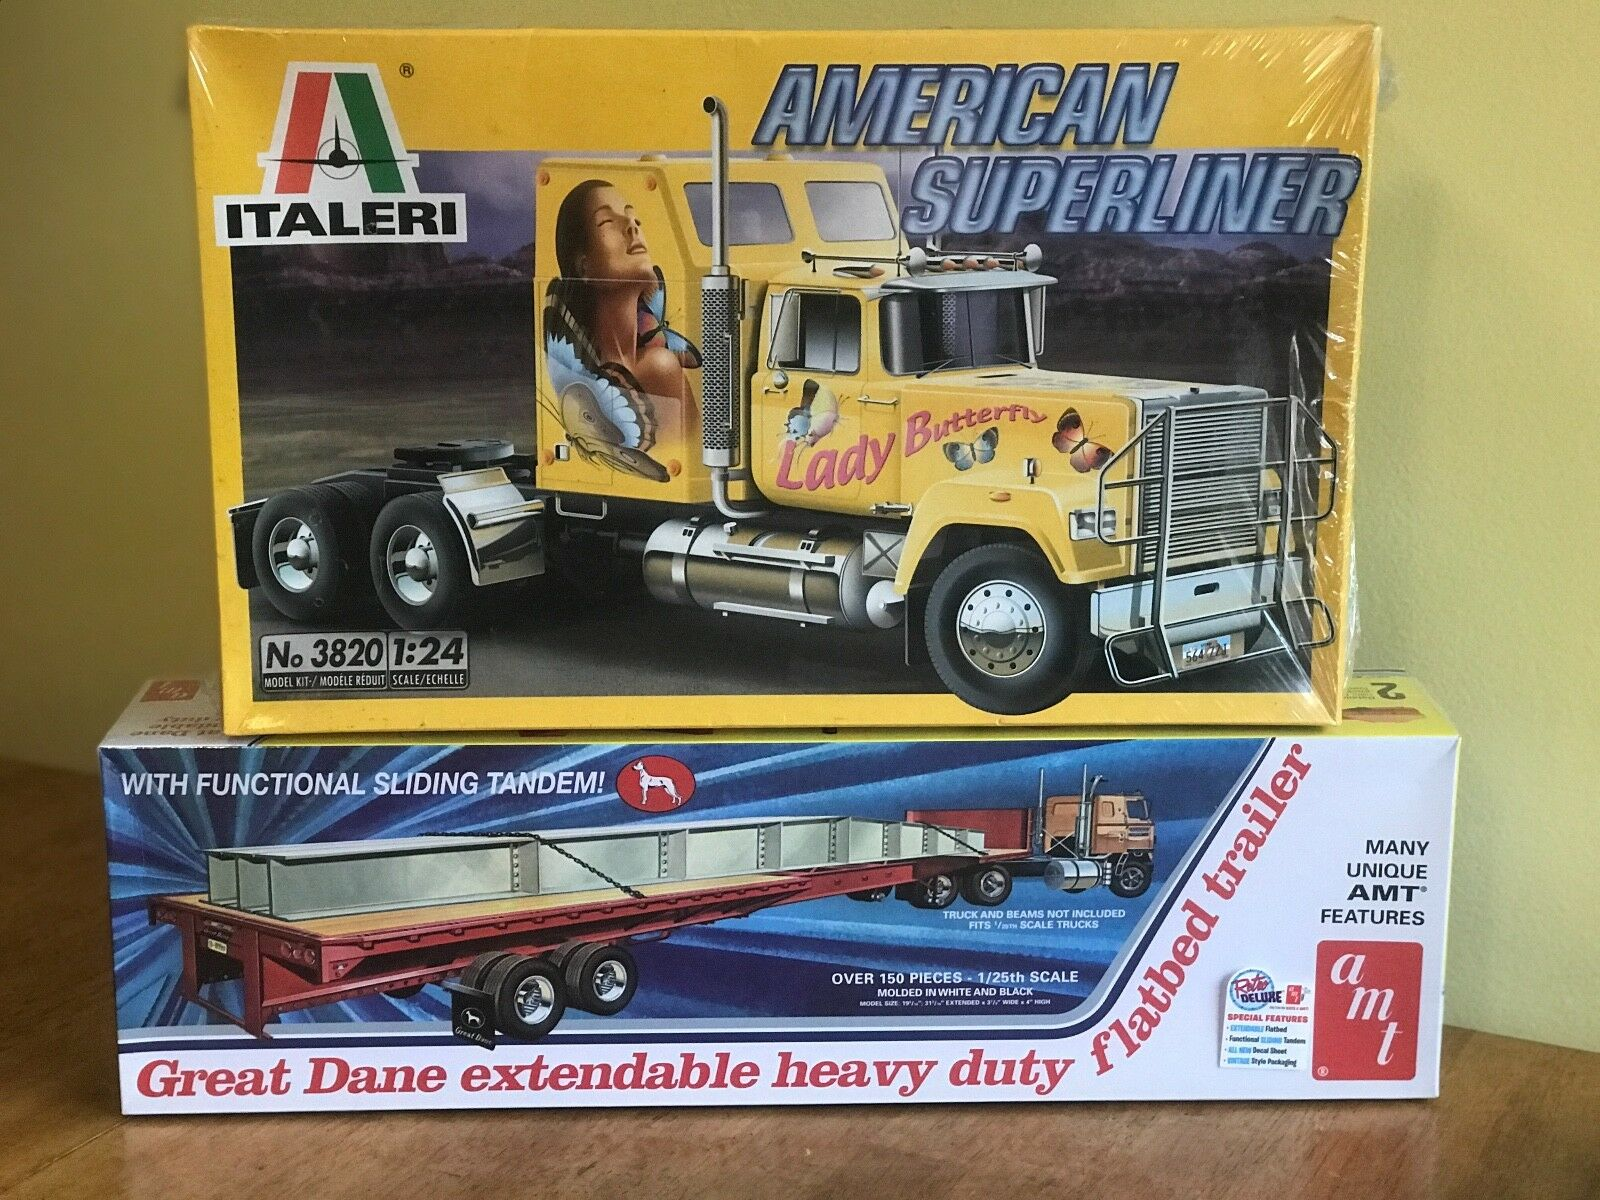 Italeri 1 24 American Superliner and AMT 125 Extendable Flatbed Trailer Sealed